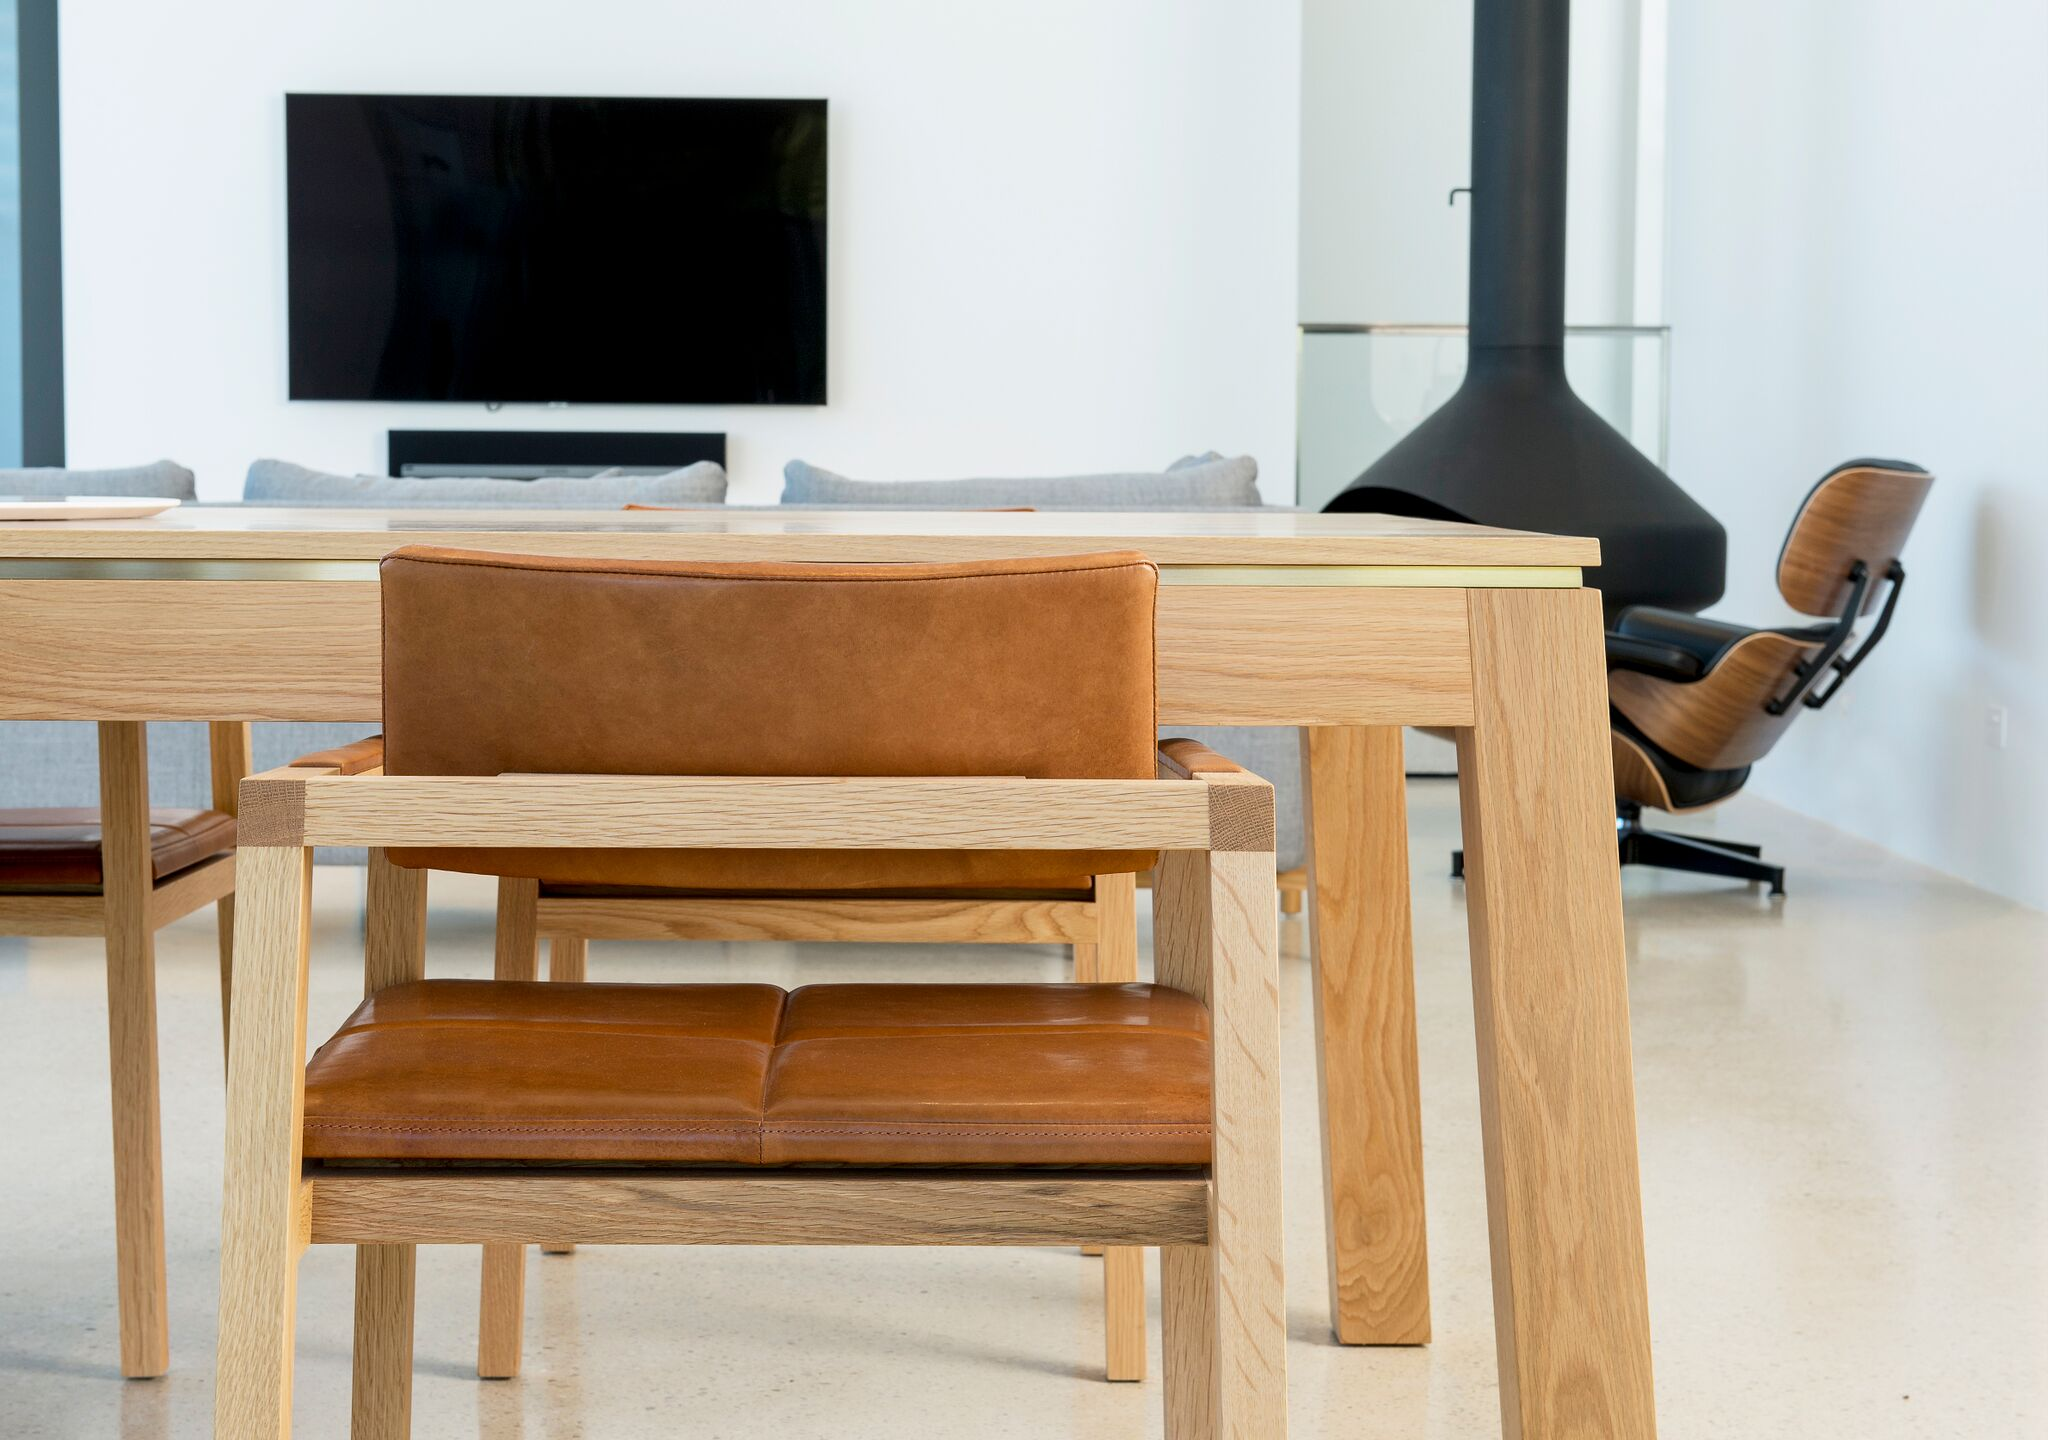 Gallery Of The Mila Table By Fraco Crea Local Australian Furniture Design Melbourne, Vic Image 14